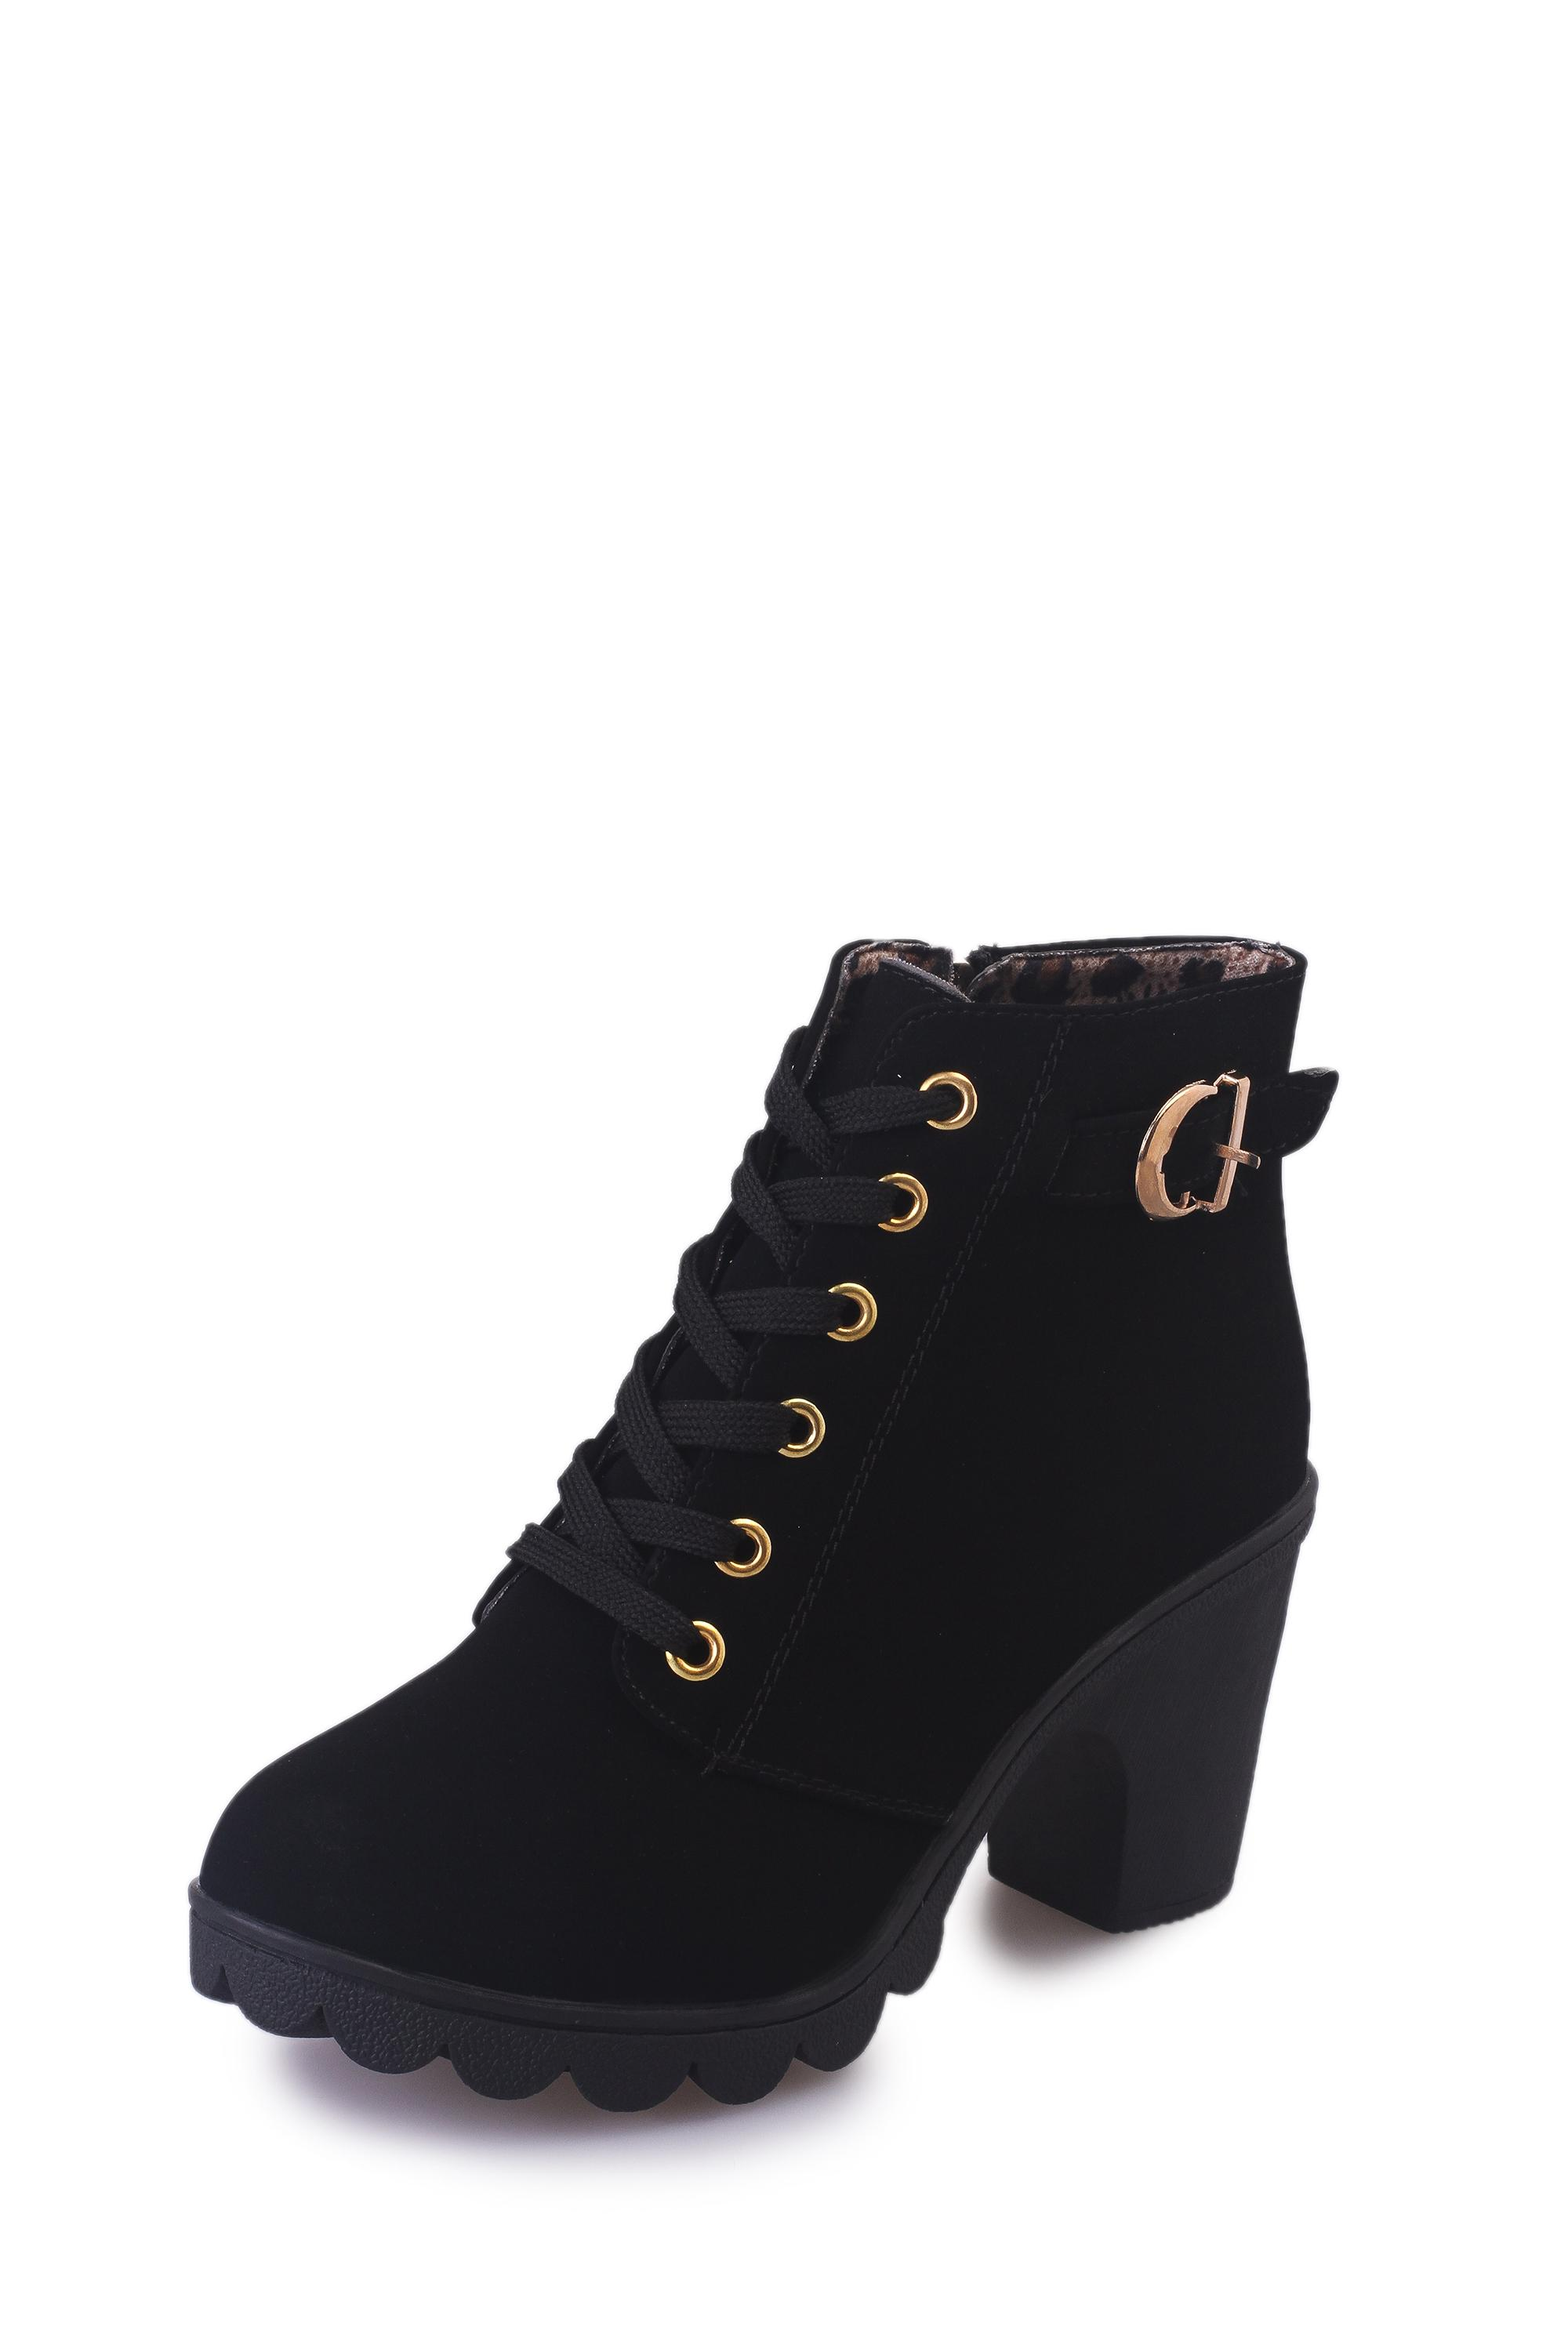 Boots for Women for sale - Womens Boots online brands cbf79fda8237